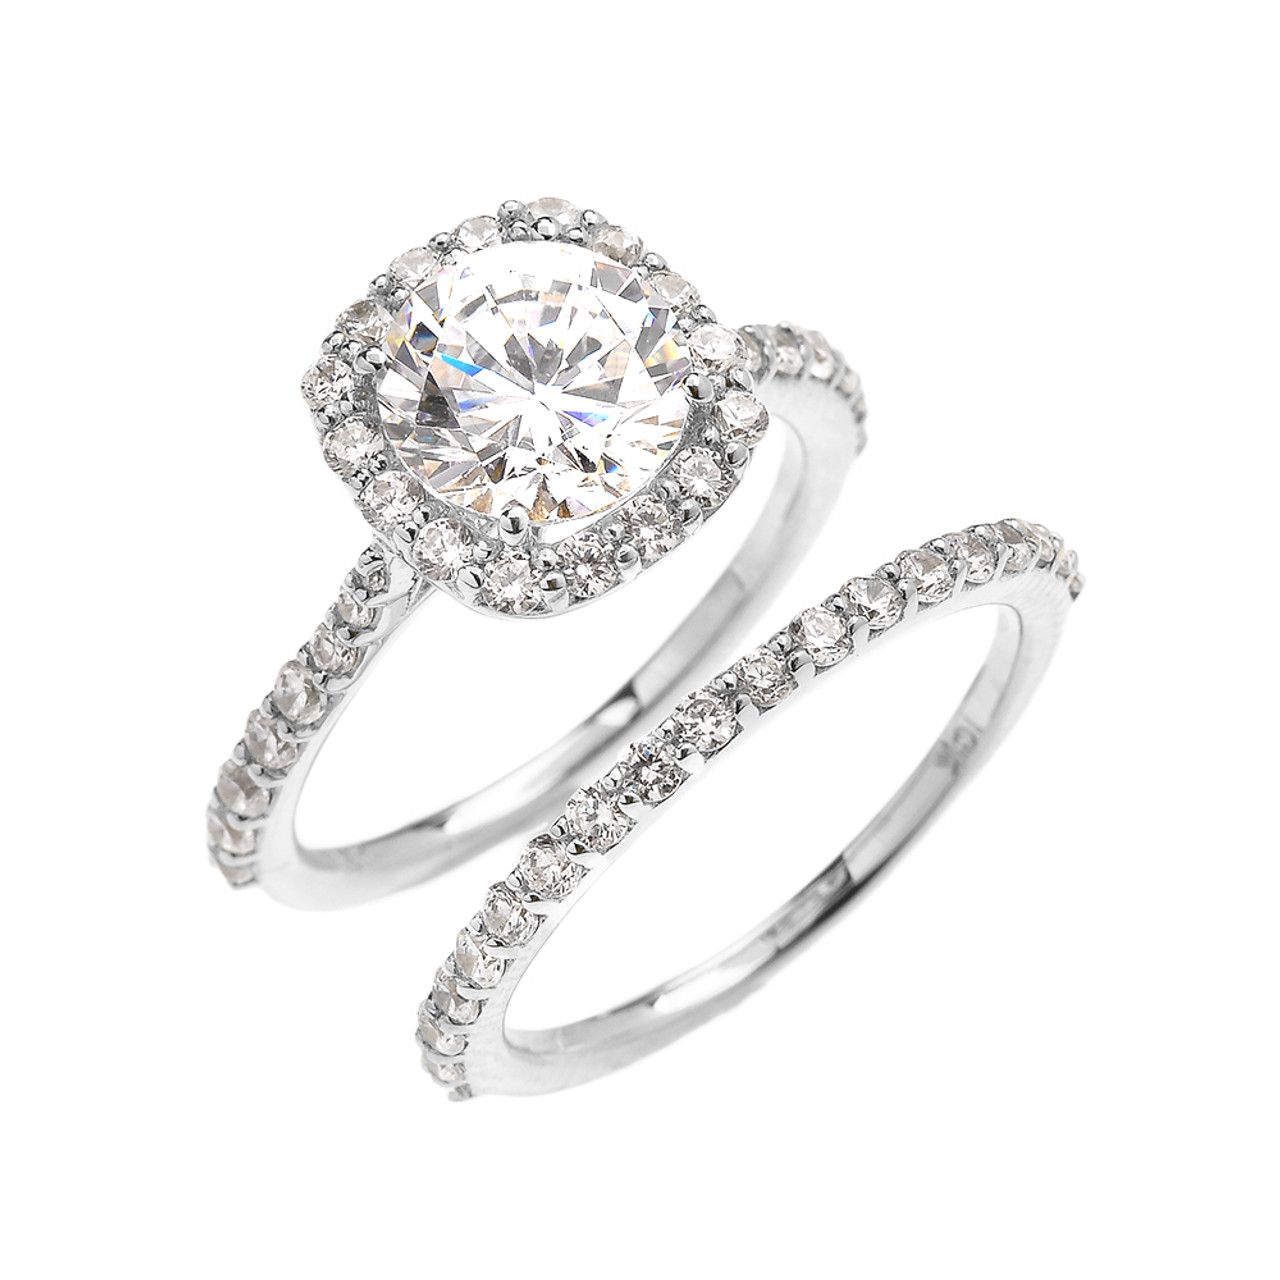 Beautiful Engagement Ring Dainty 3 Carat Halo Cz Ring Set In White Gold